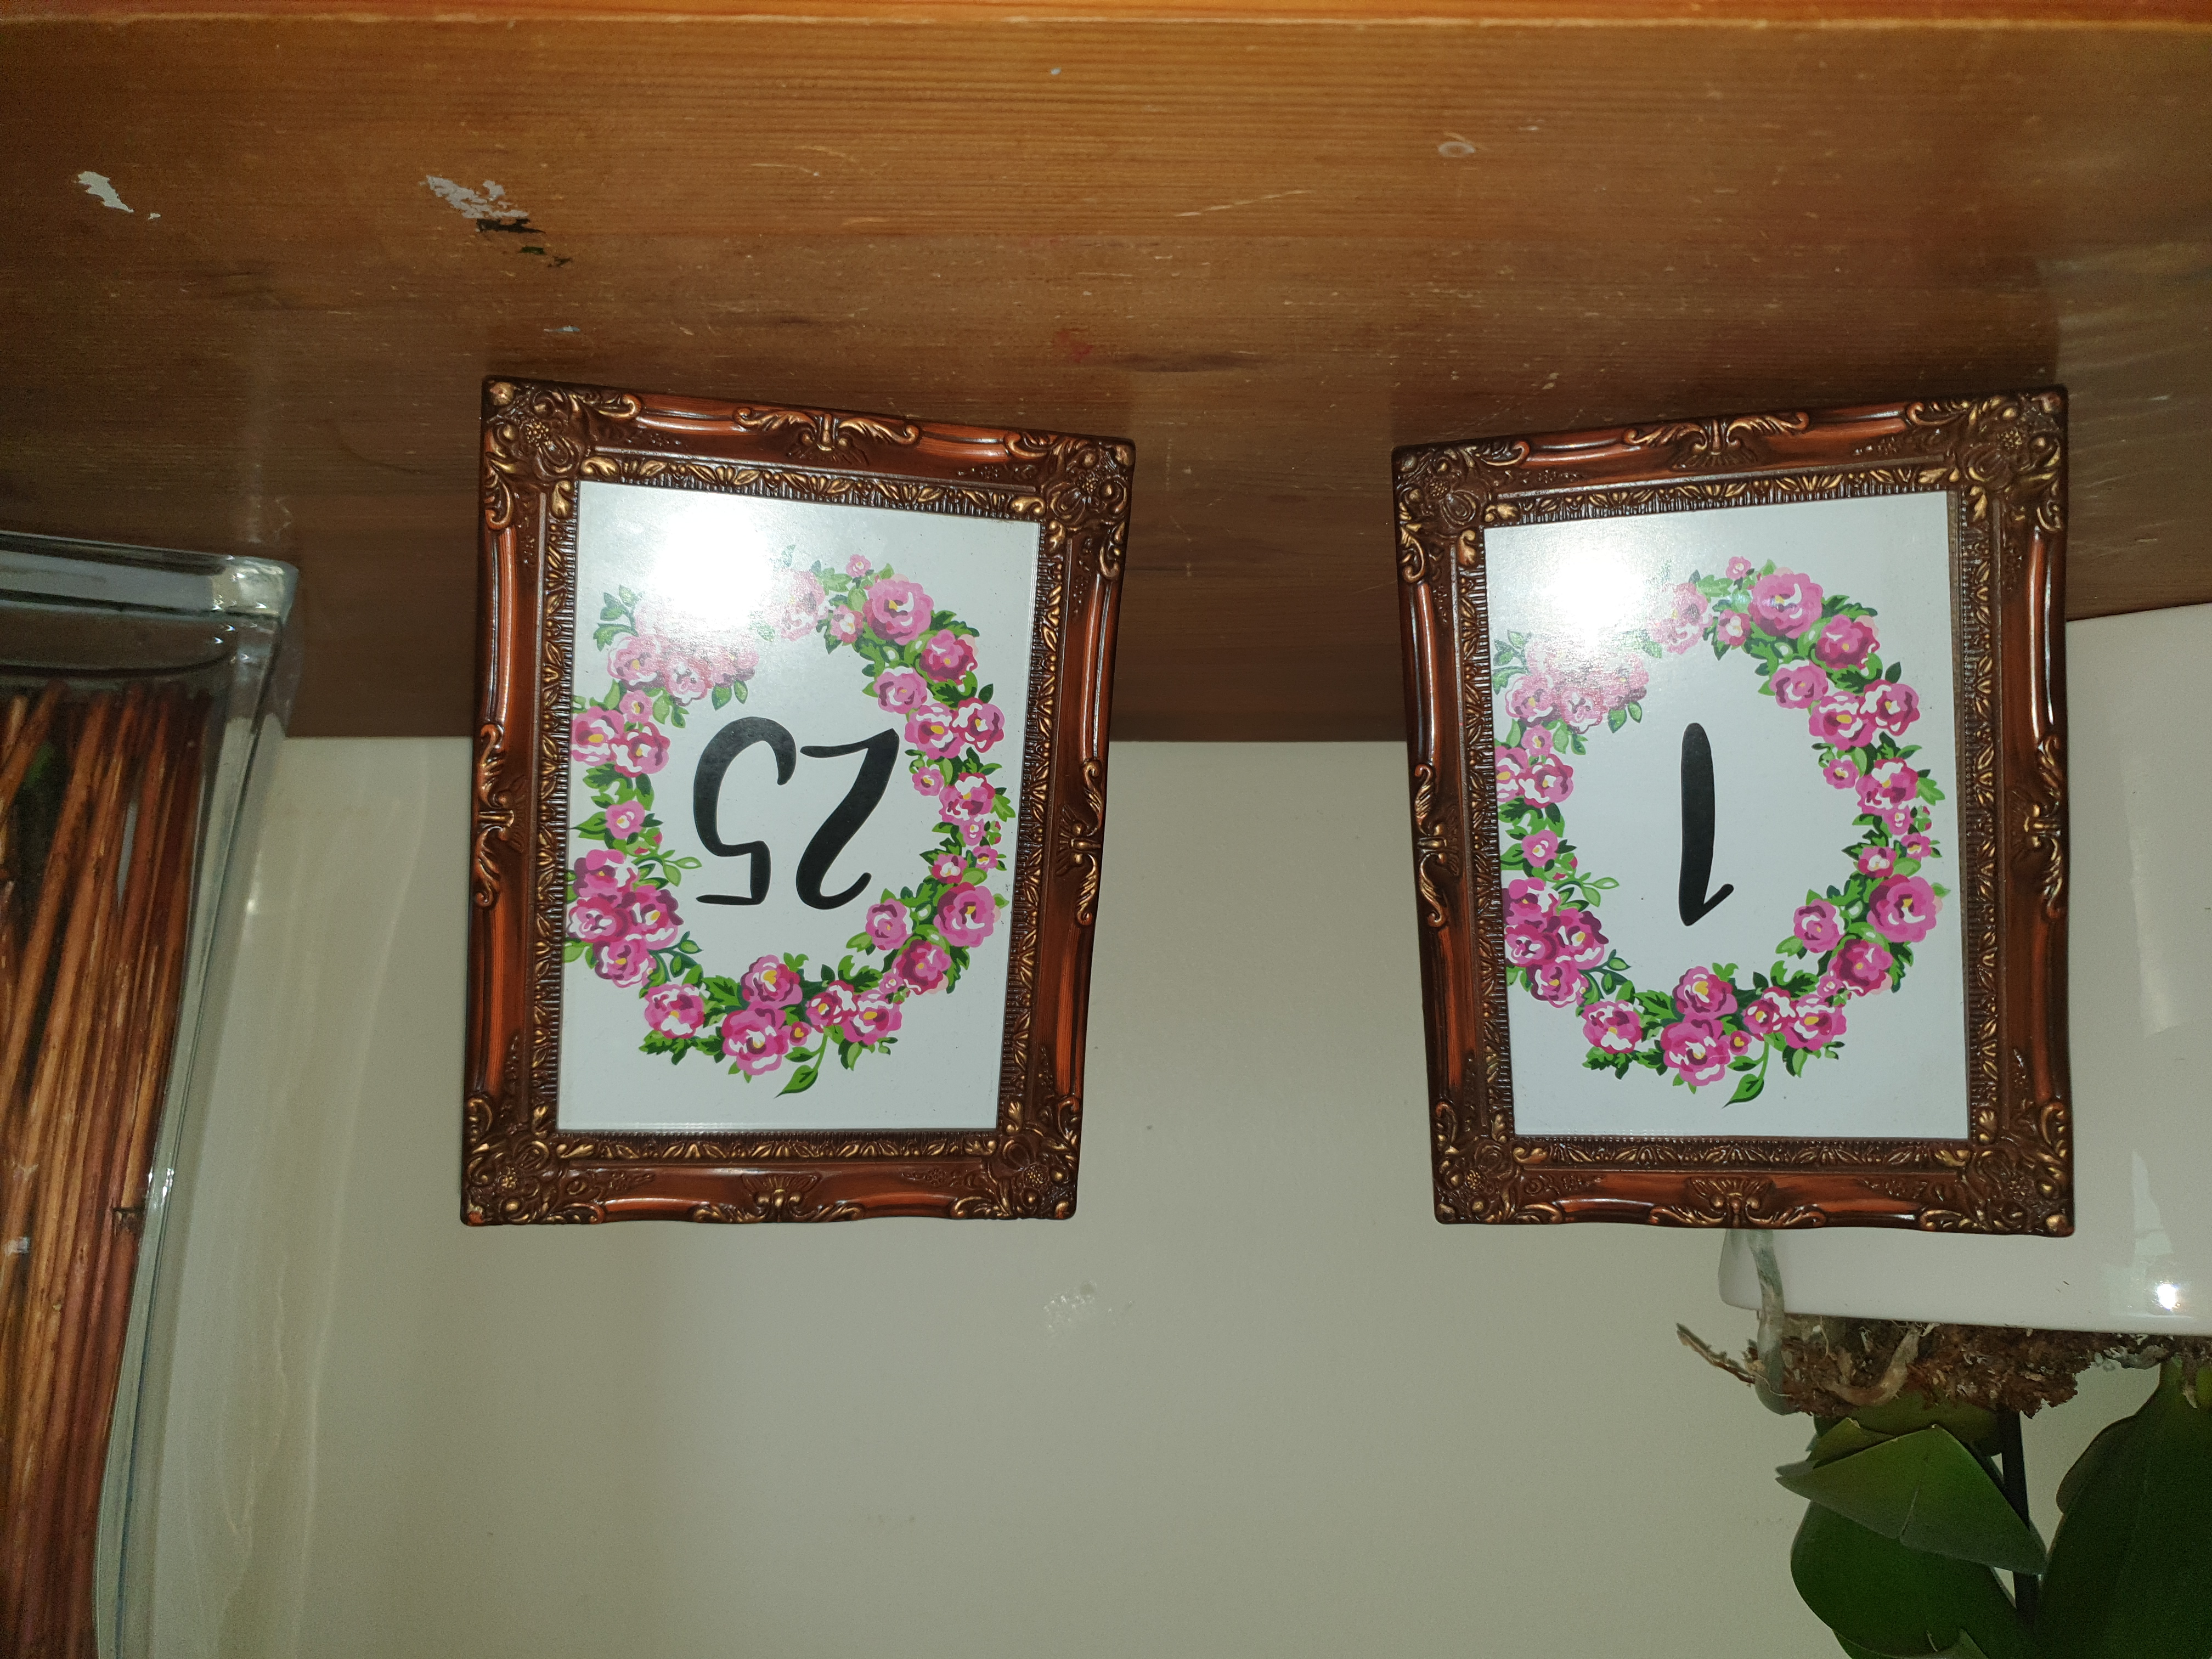 Table numbers brown frame with pink floral pattern 1 to 25 (18 frames) $2.00 per number